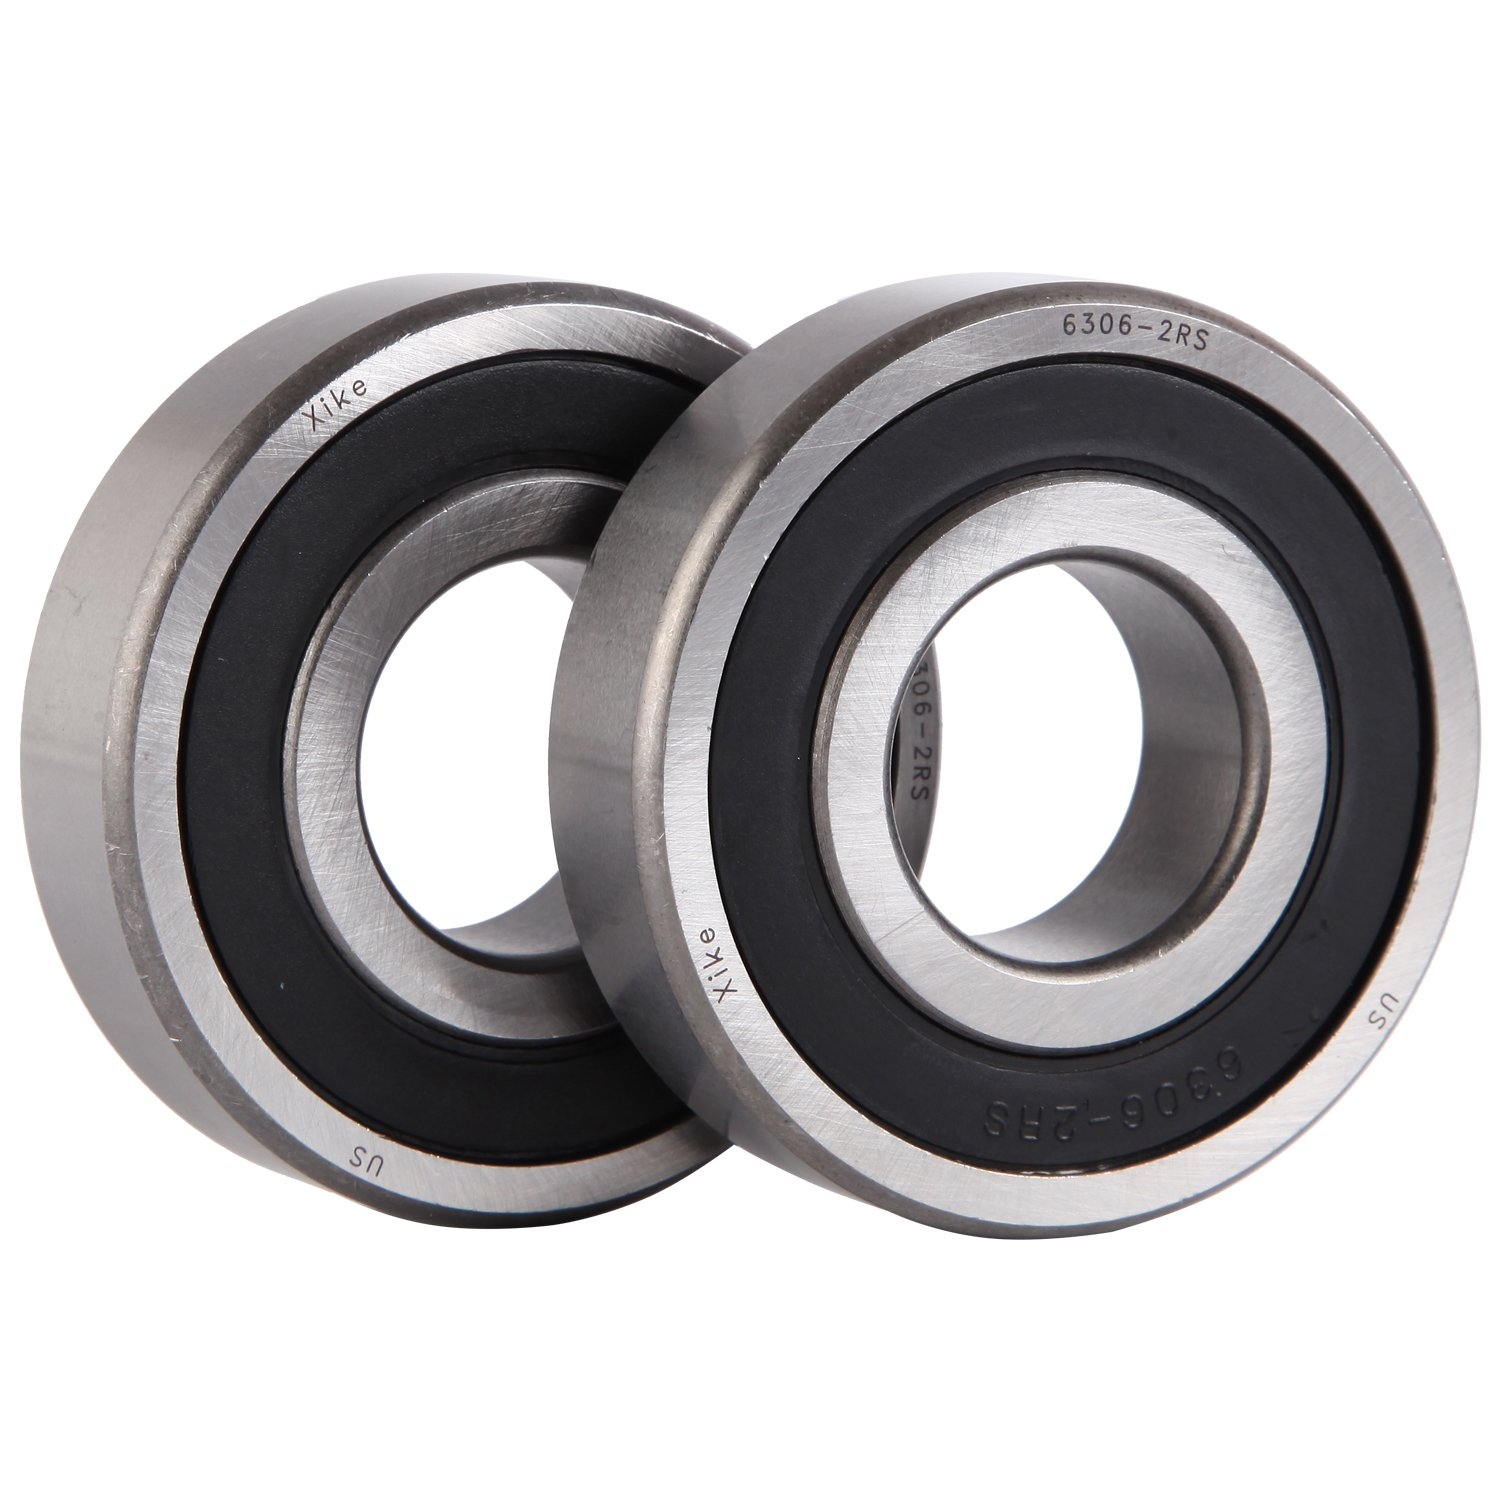 XiKe 2 Pack 6306-2RS Bearings 30x72x19mm, Stable Performance and Cost-Effective, Double Seal and Pre-Lubricated, Deep Groove Ball Bearings. 6306-2RSx2Pcs